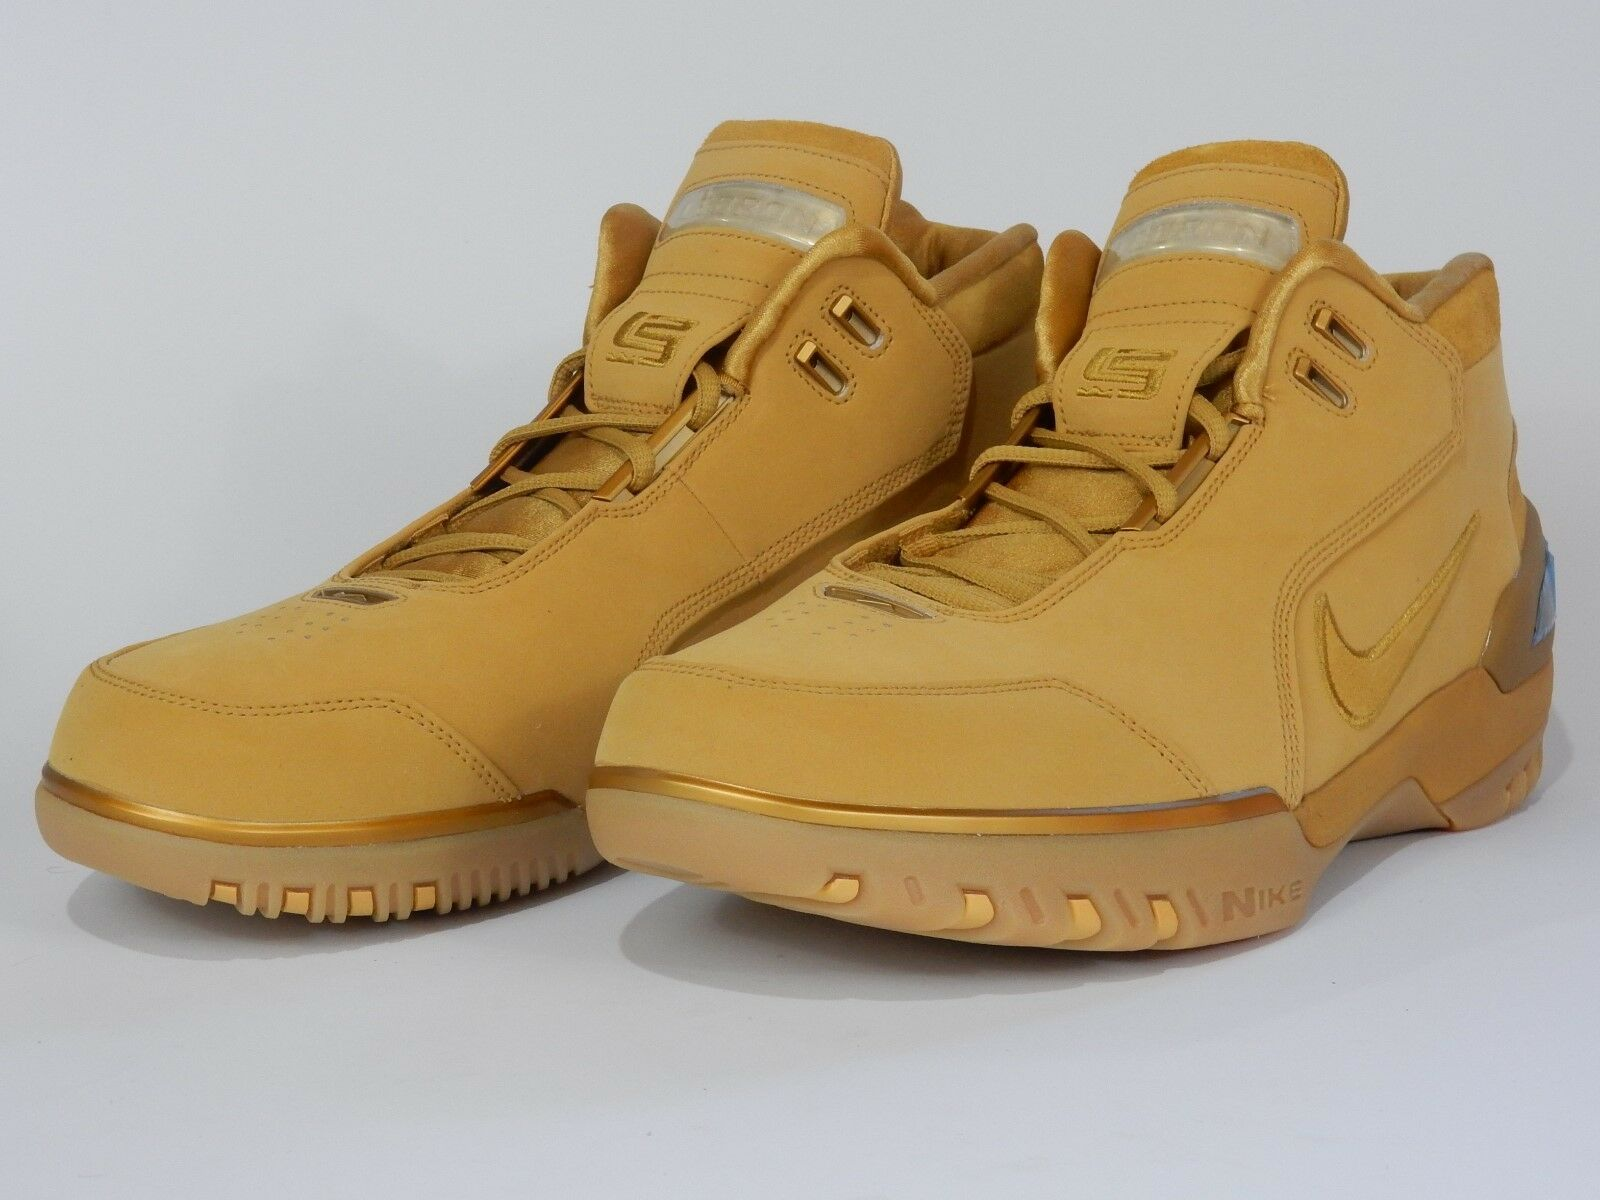 Lebron Nike Air Zoom Generation 2018 Wheat 308214 771 S Retro Shoes Comfortable Cheap and beautiful fashion